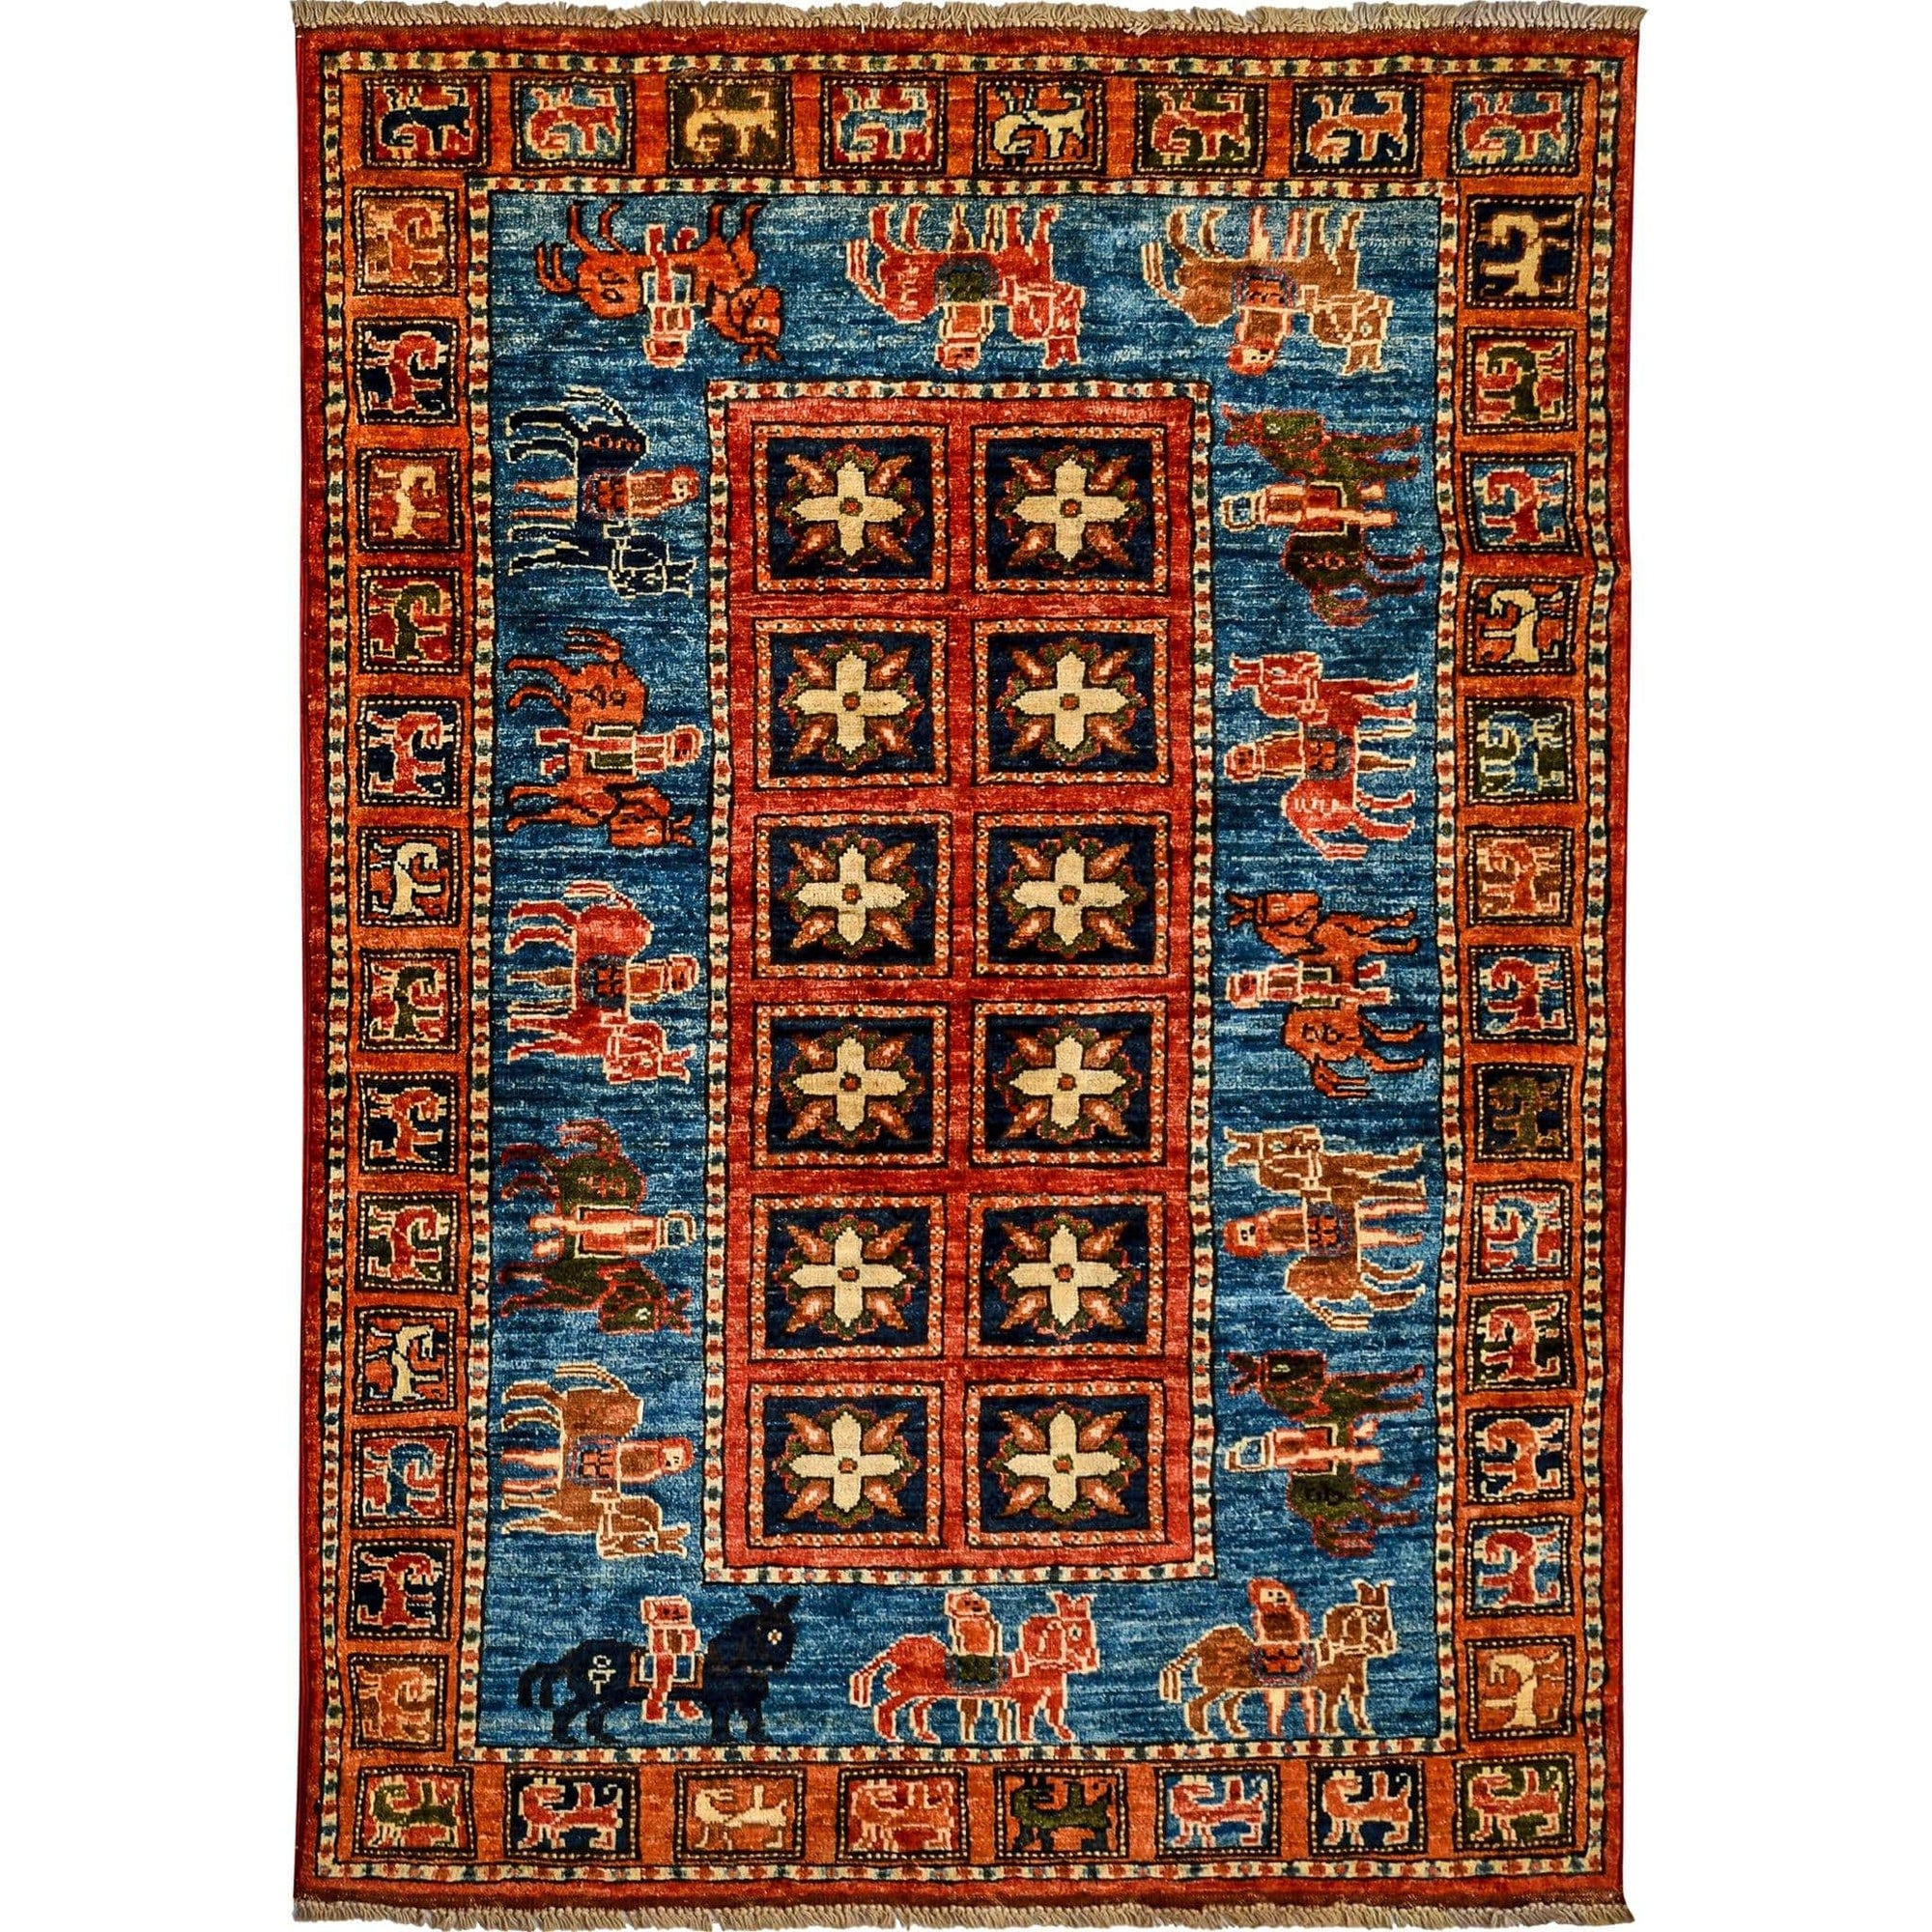 Fine Hand-knotted Wool Small Rug 1.05cm x 1.48cm Persian-Rug | House-of-Haghi | NewMarket | Auckland | NZ | Handmade Persian Rugs | Hand Knotted Persian Rugs